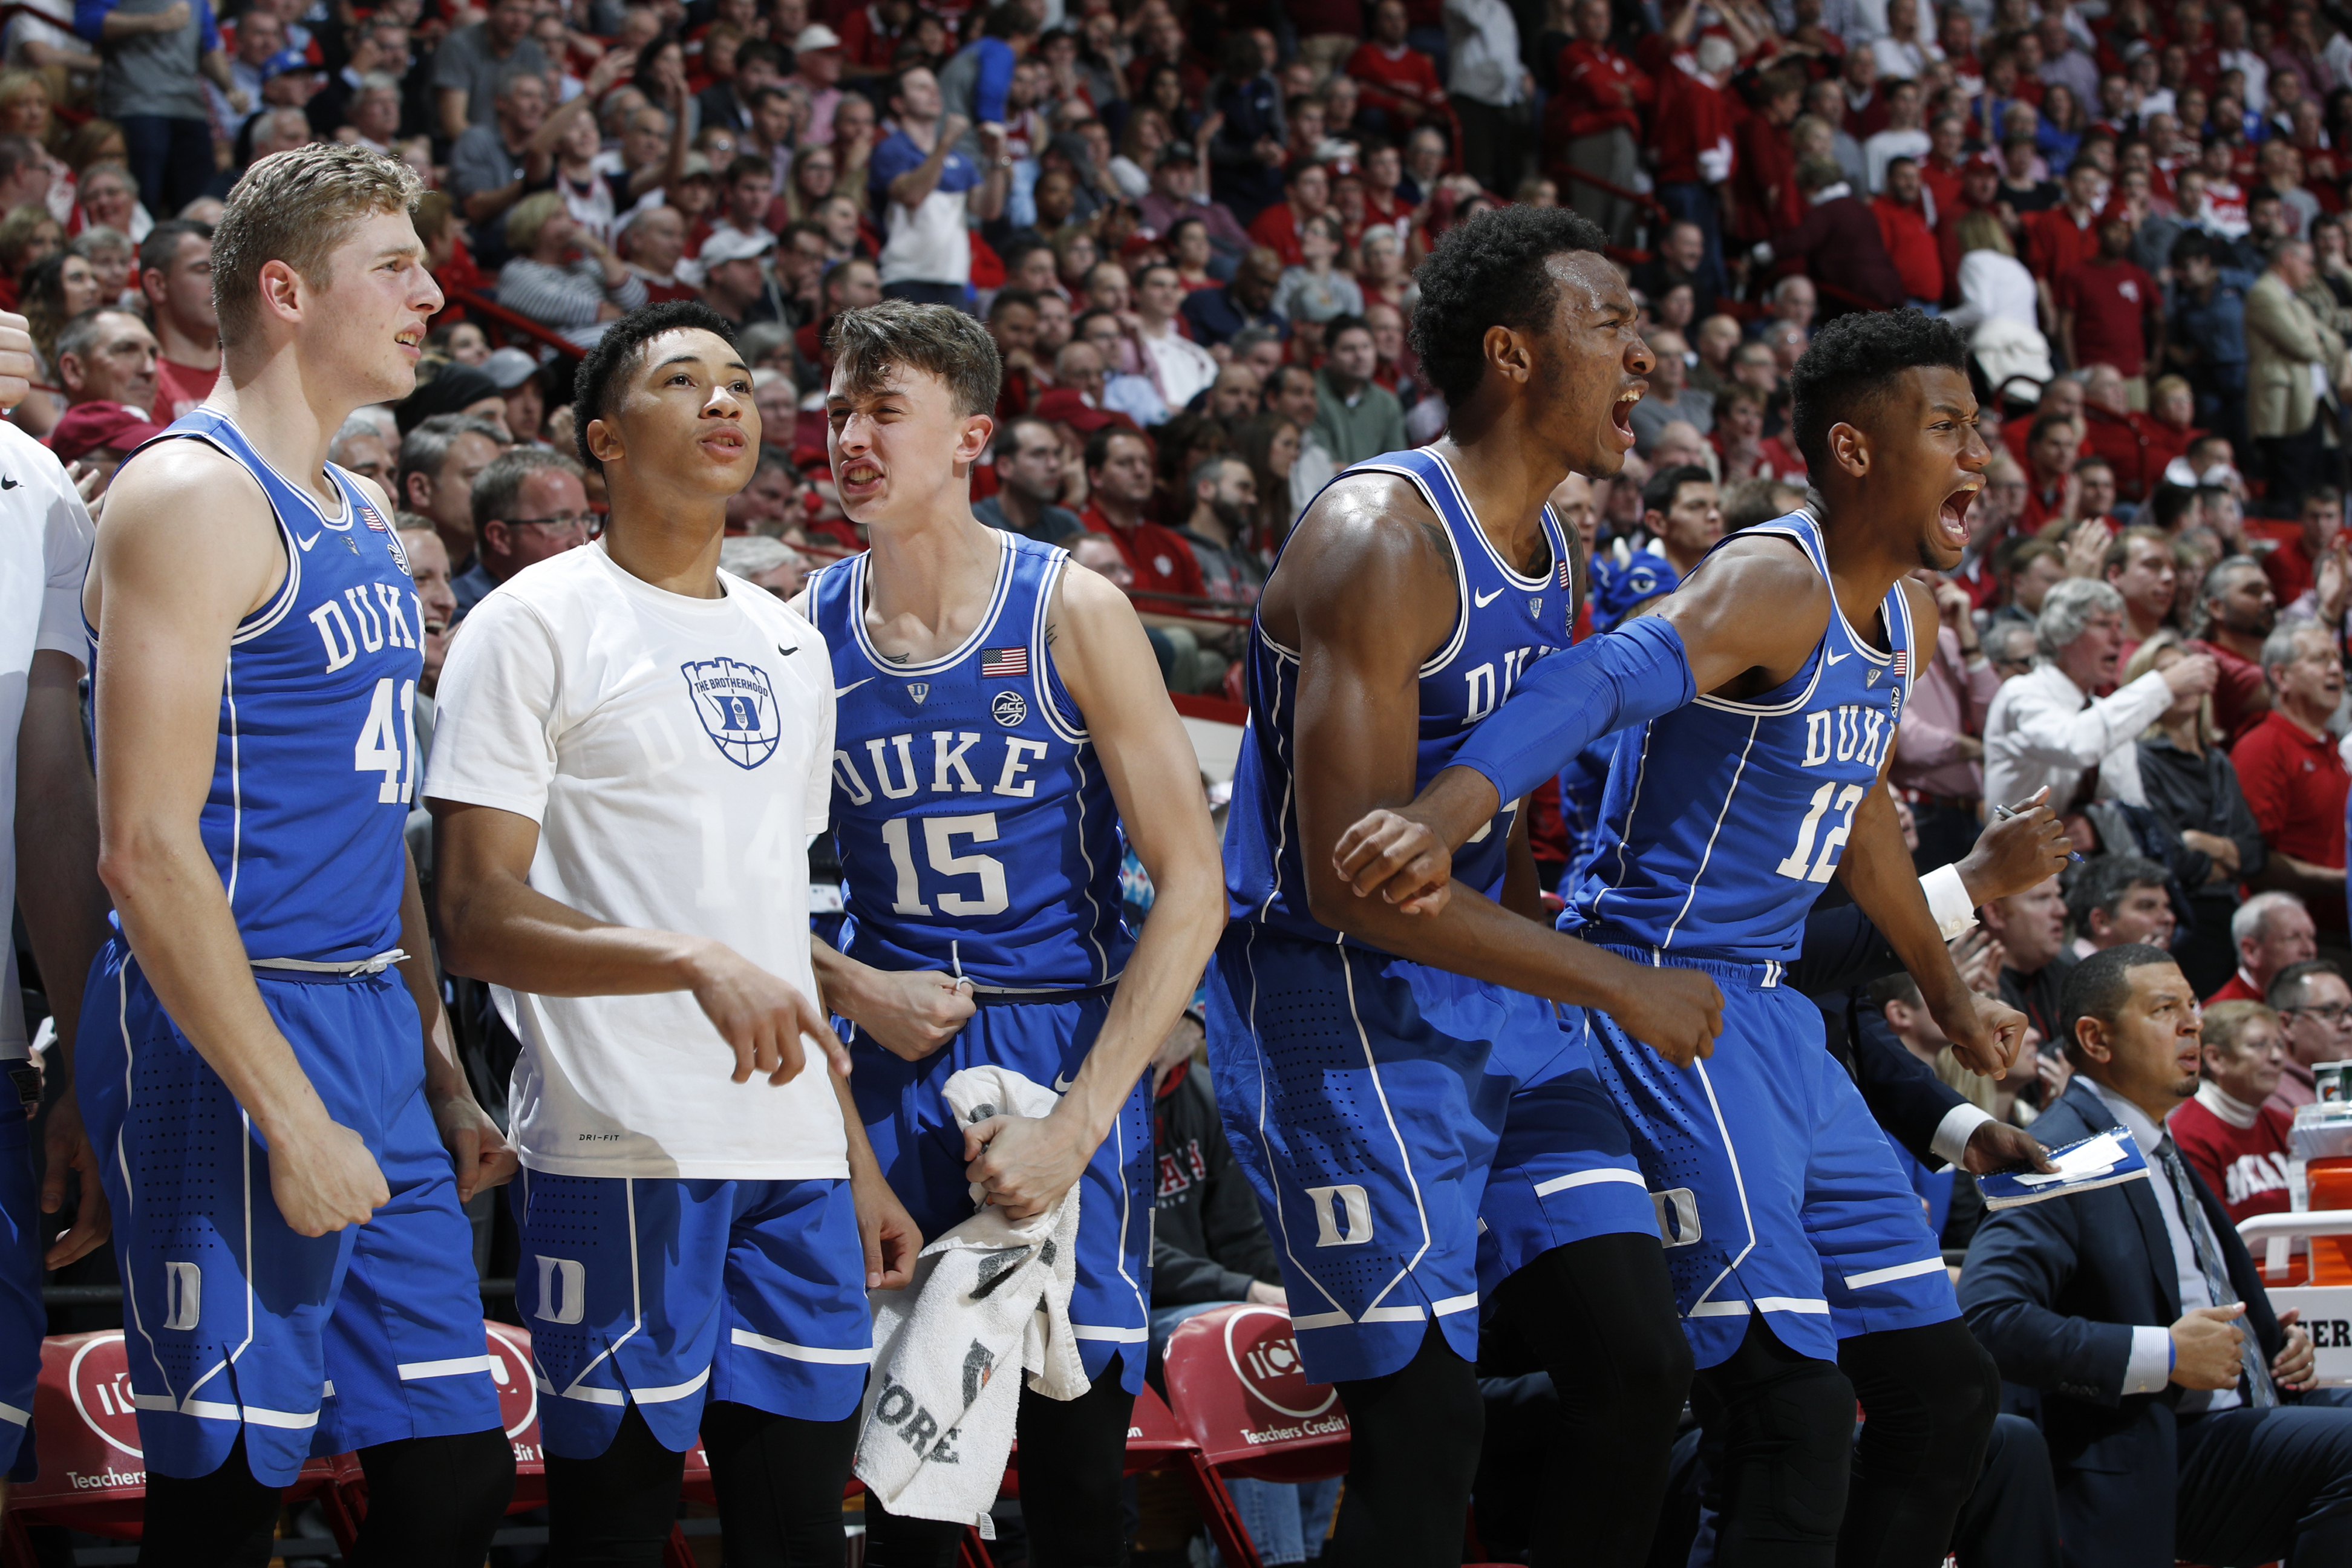 Duke Basketball: 5 Questions for the game against South Dakota